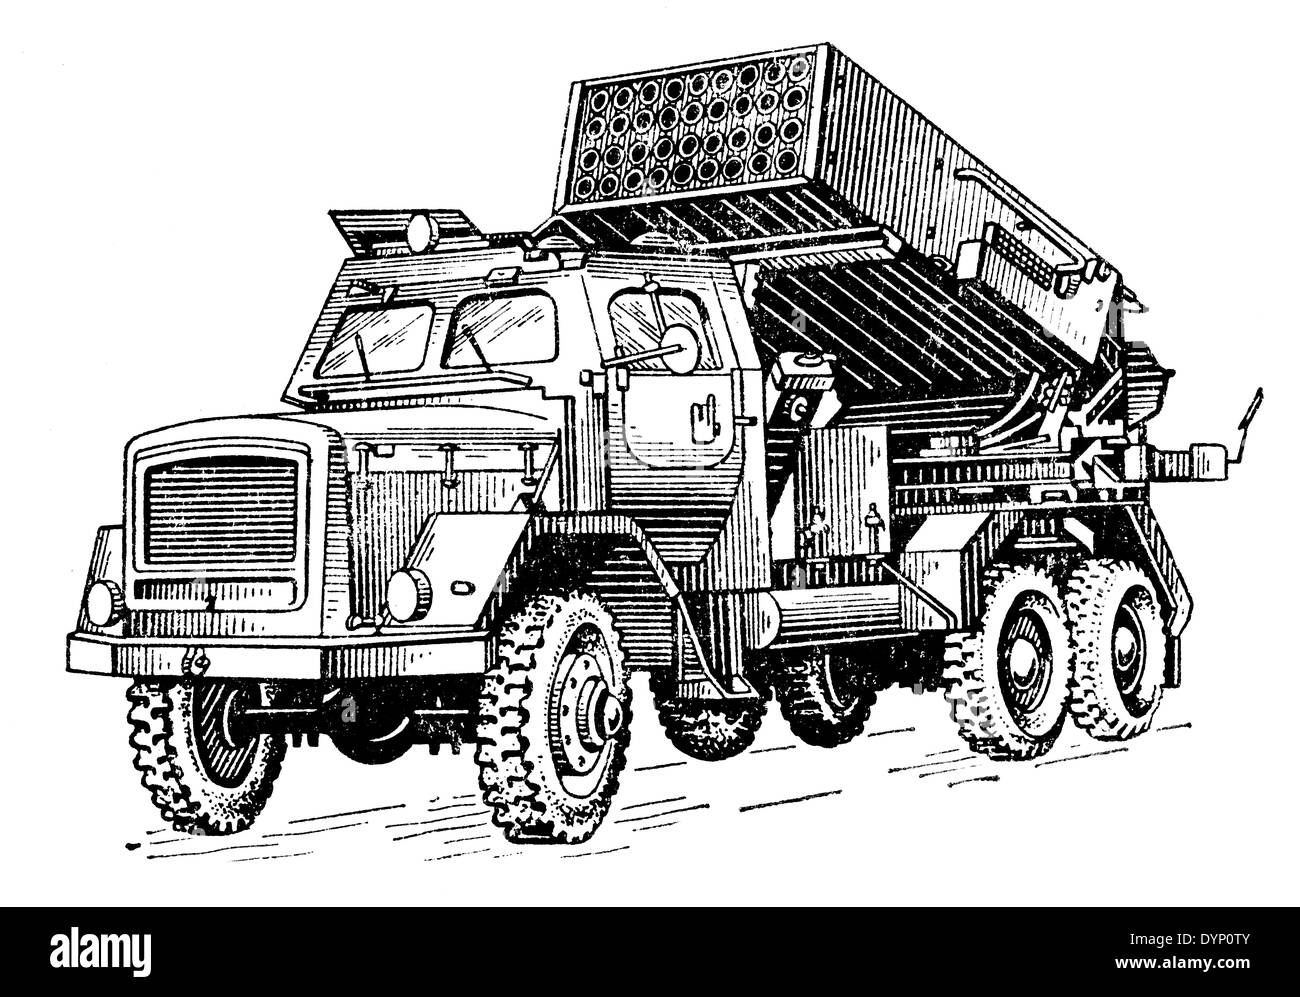 Light Artillery Rocket System (LARS), Multiple rocket launcher, Germany, 1960s - Stock Image